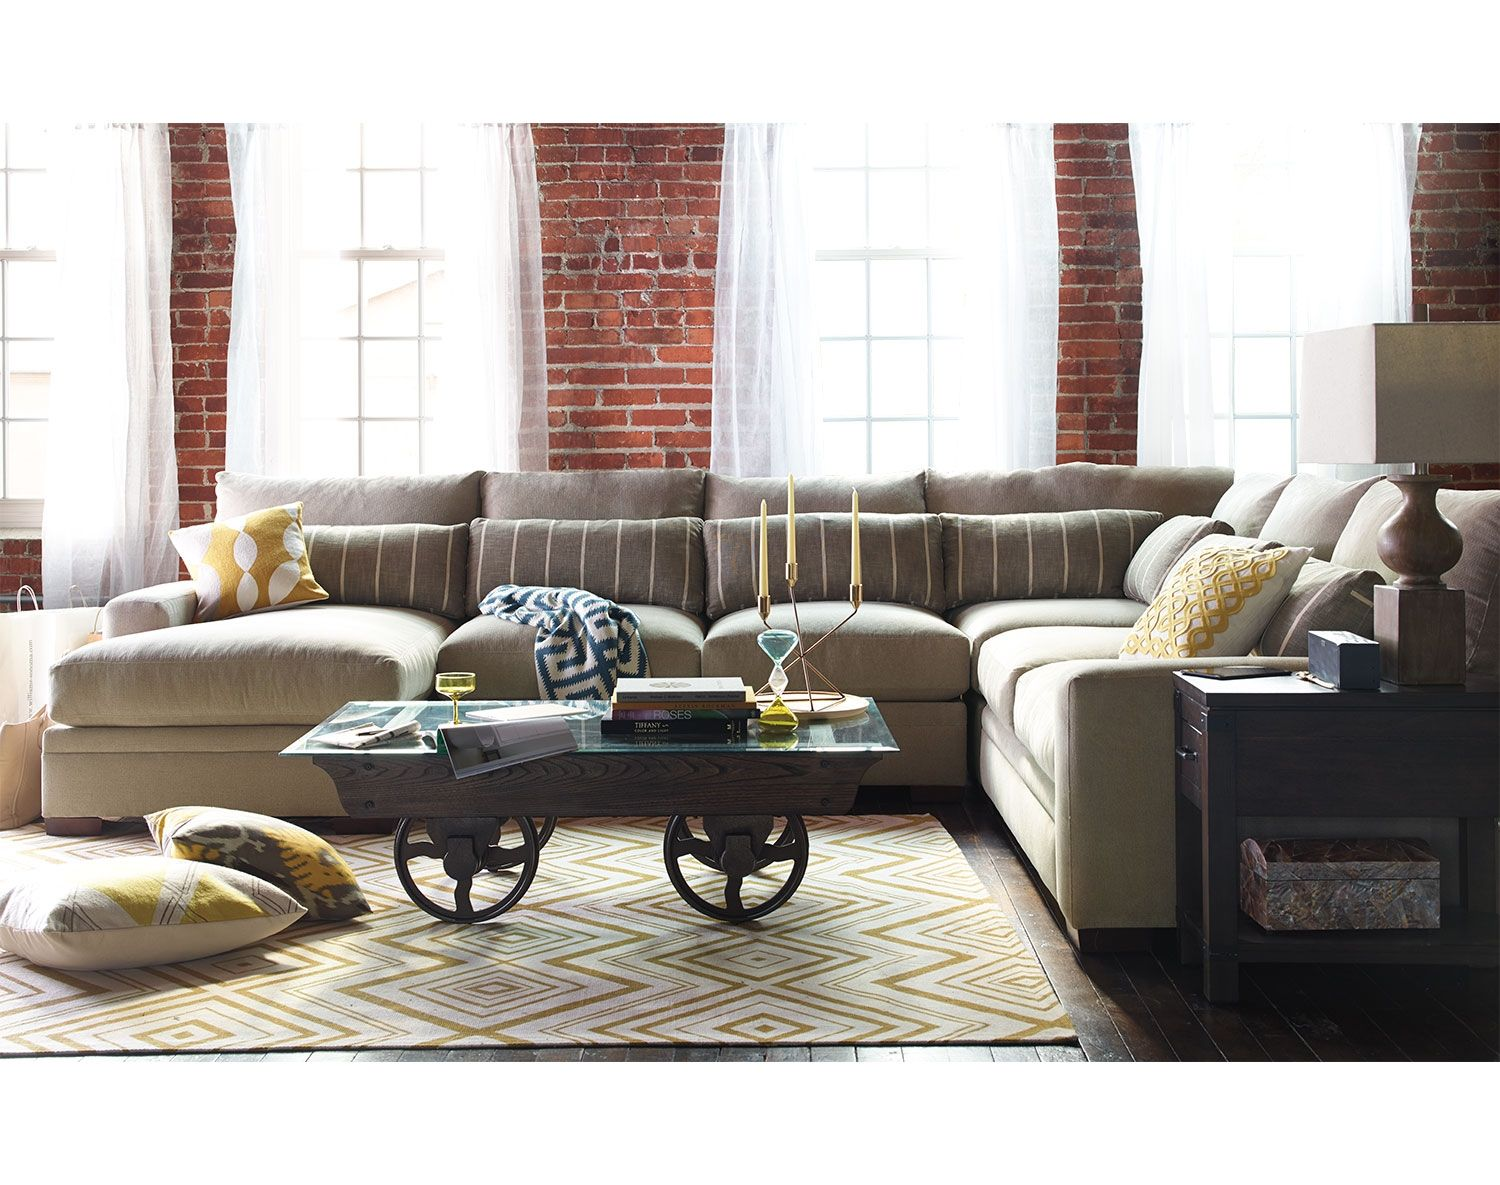 Living Room Design With Sectional Sofa Classy My Favorite But It Cost $2999 The Ventura Collection Review